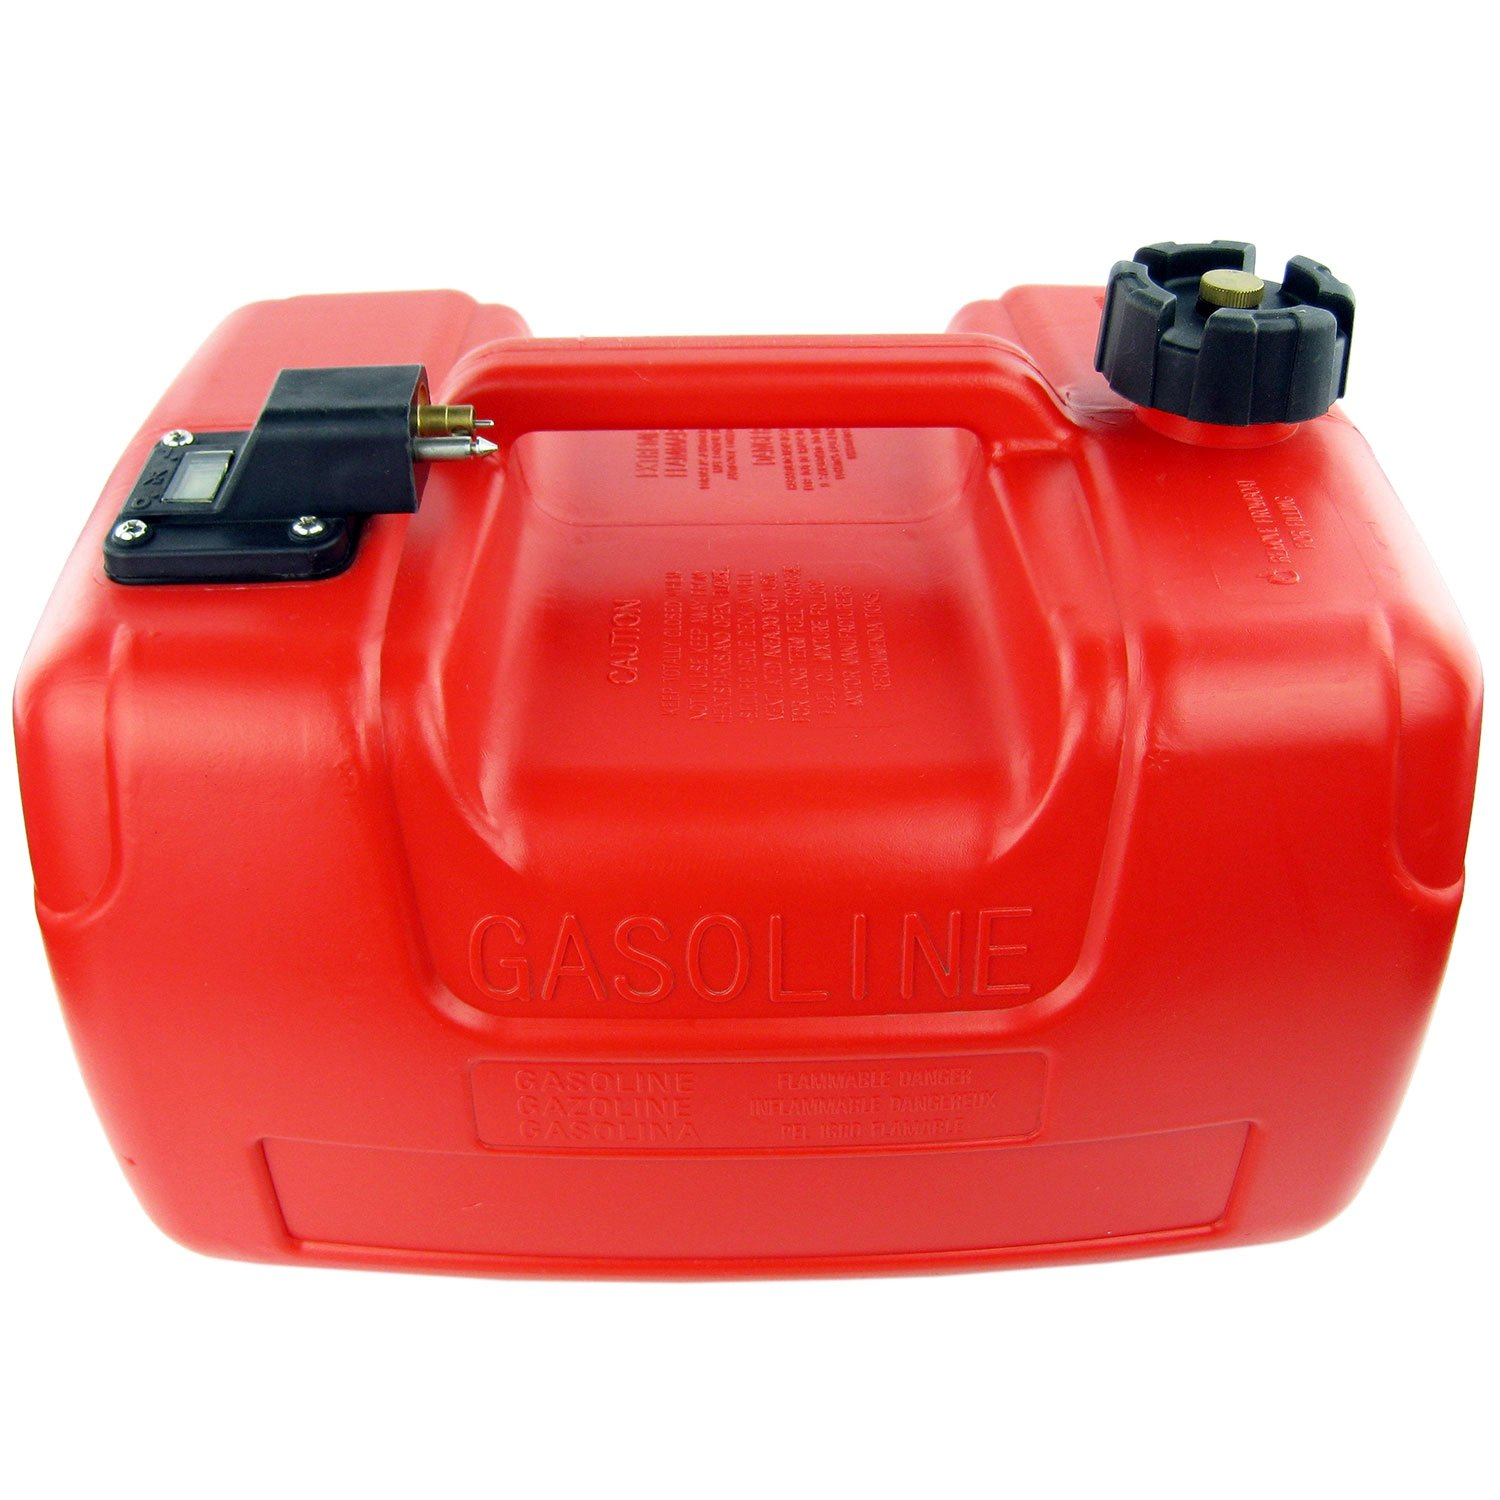 SEAWELL Portable Boat Fuel Tank 3.2 Gallon 12L for Yamaha Marine Outboard Fuel Tank W/Connector